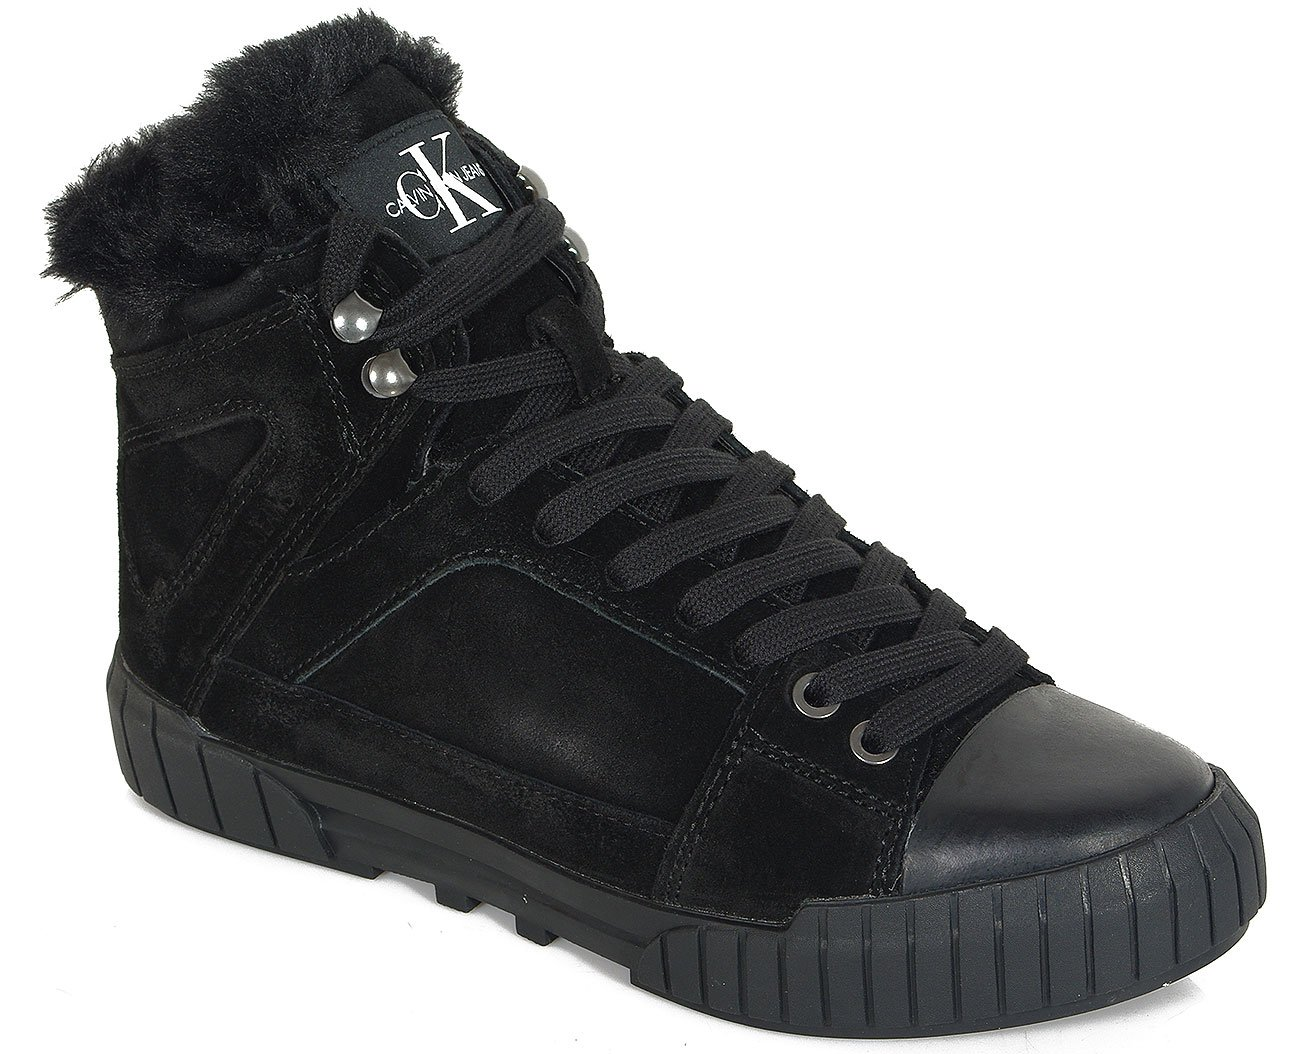 Calvin Klein Jeans Bolla sneakers suede black